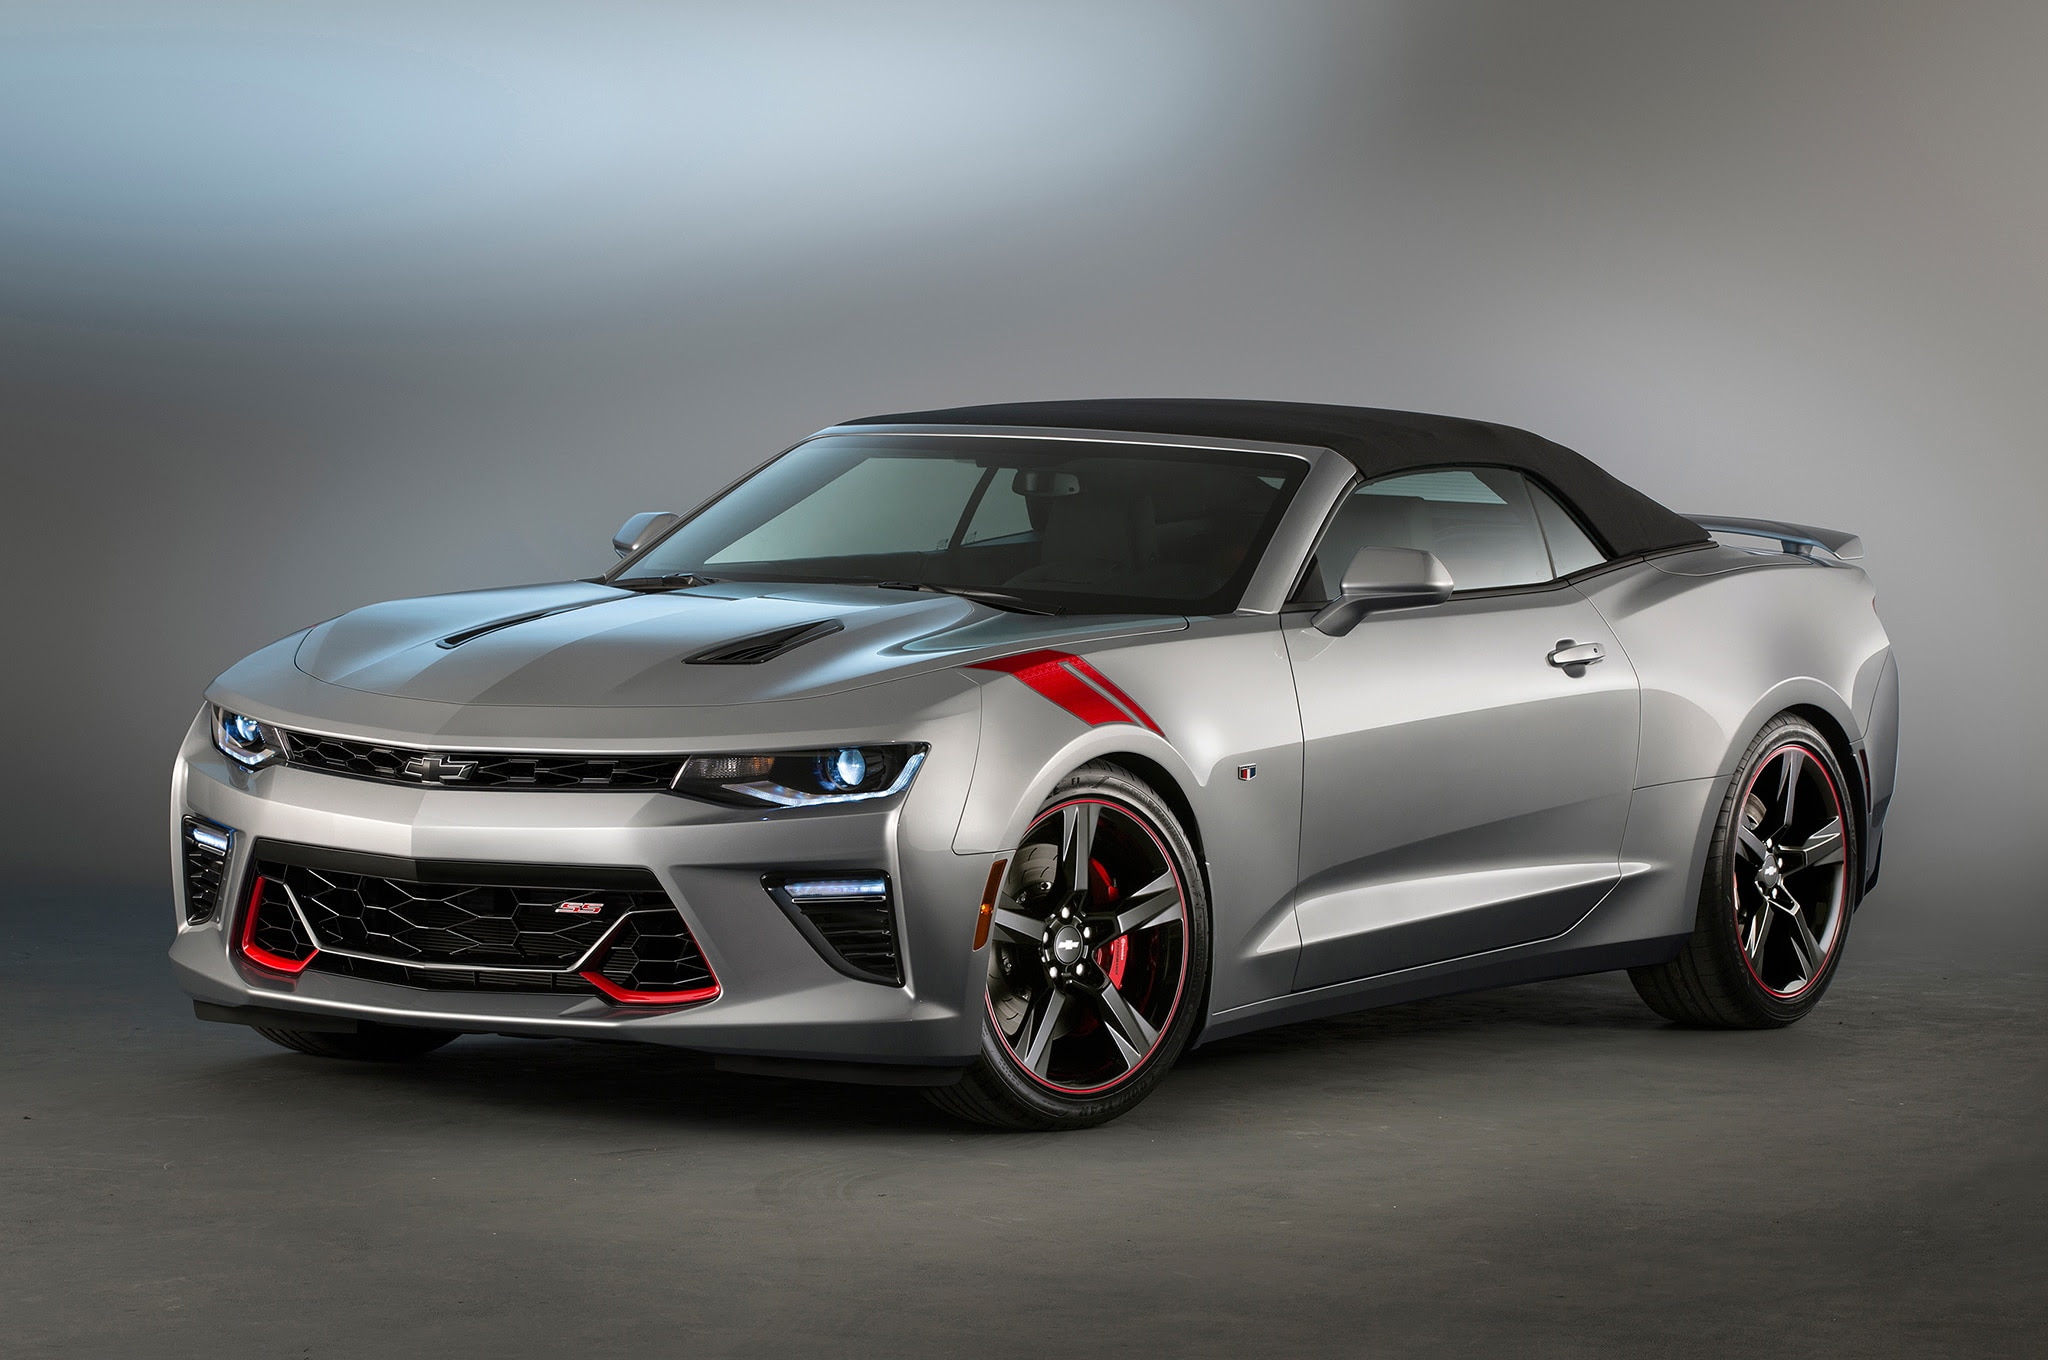 2016 Chevrolet Camaro Ss Red Black Accent Concepts Head To Sema